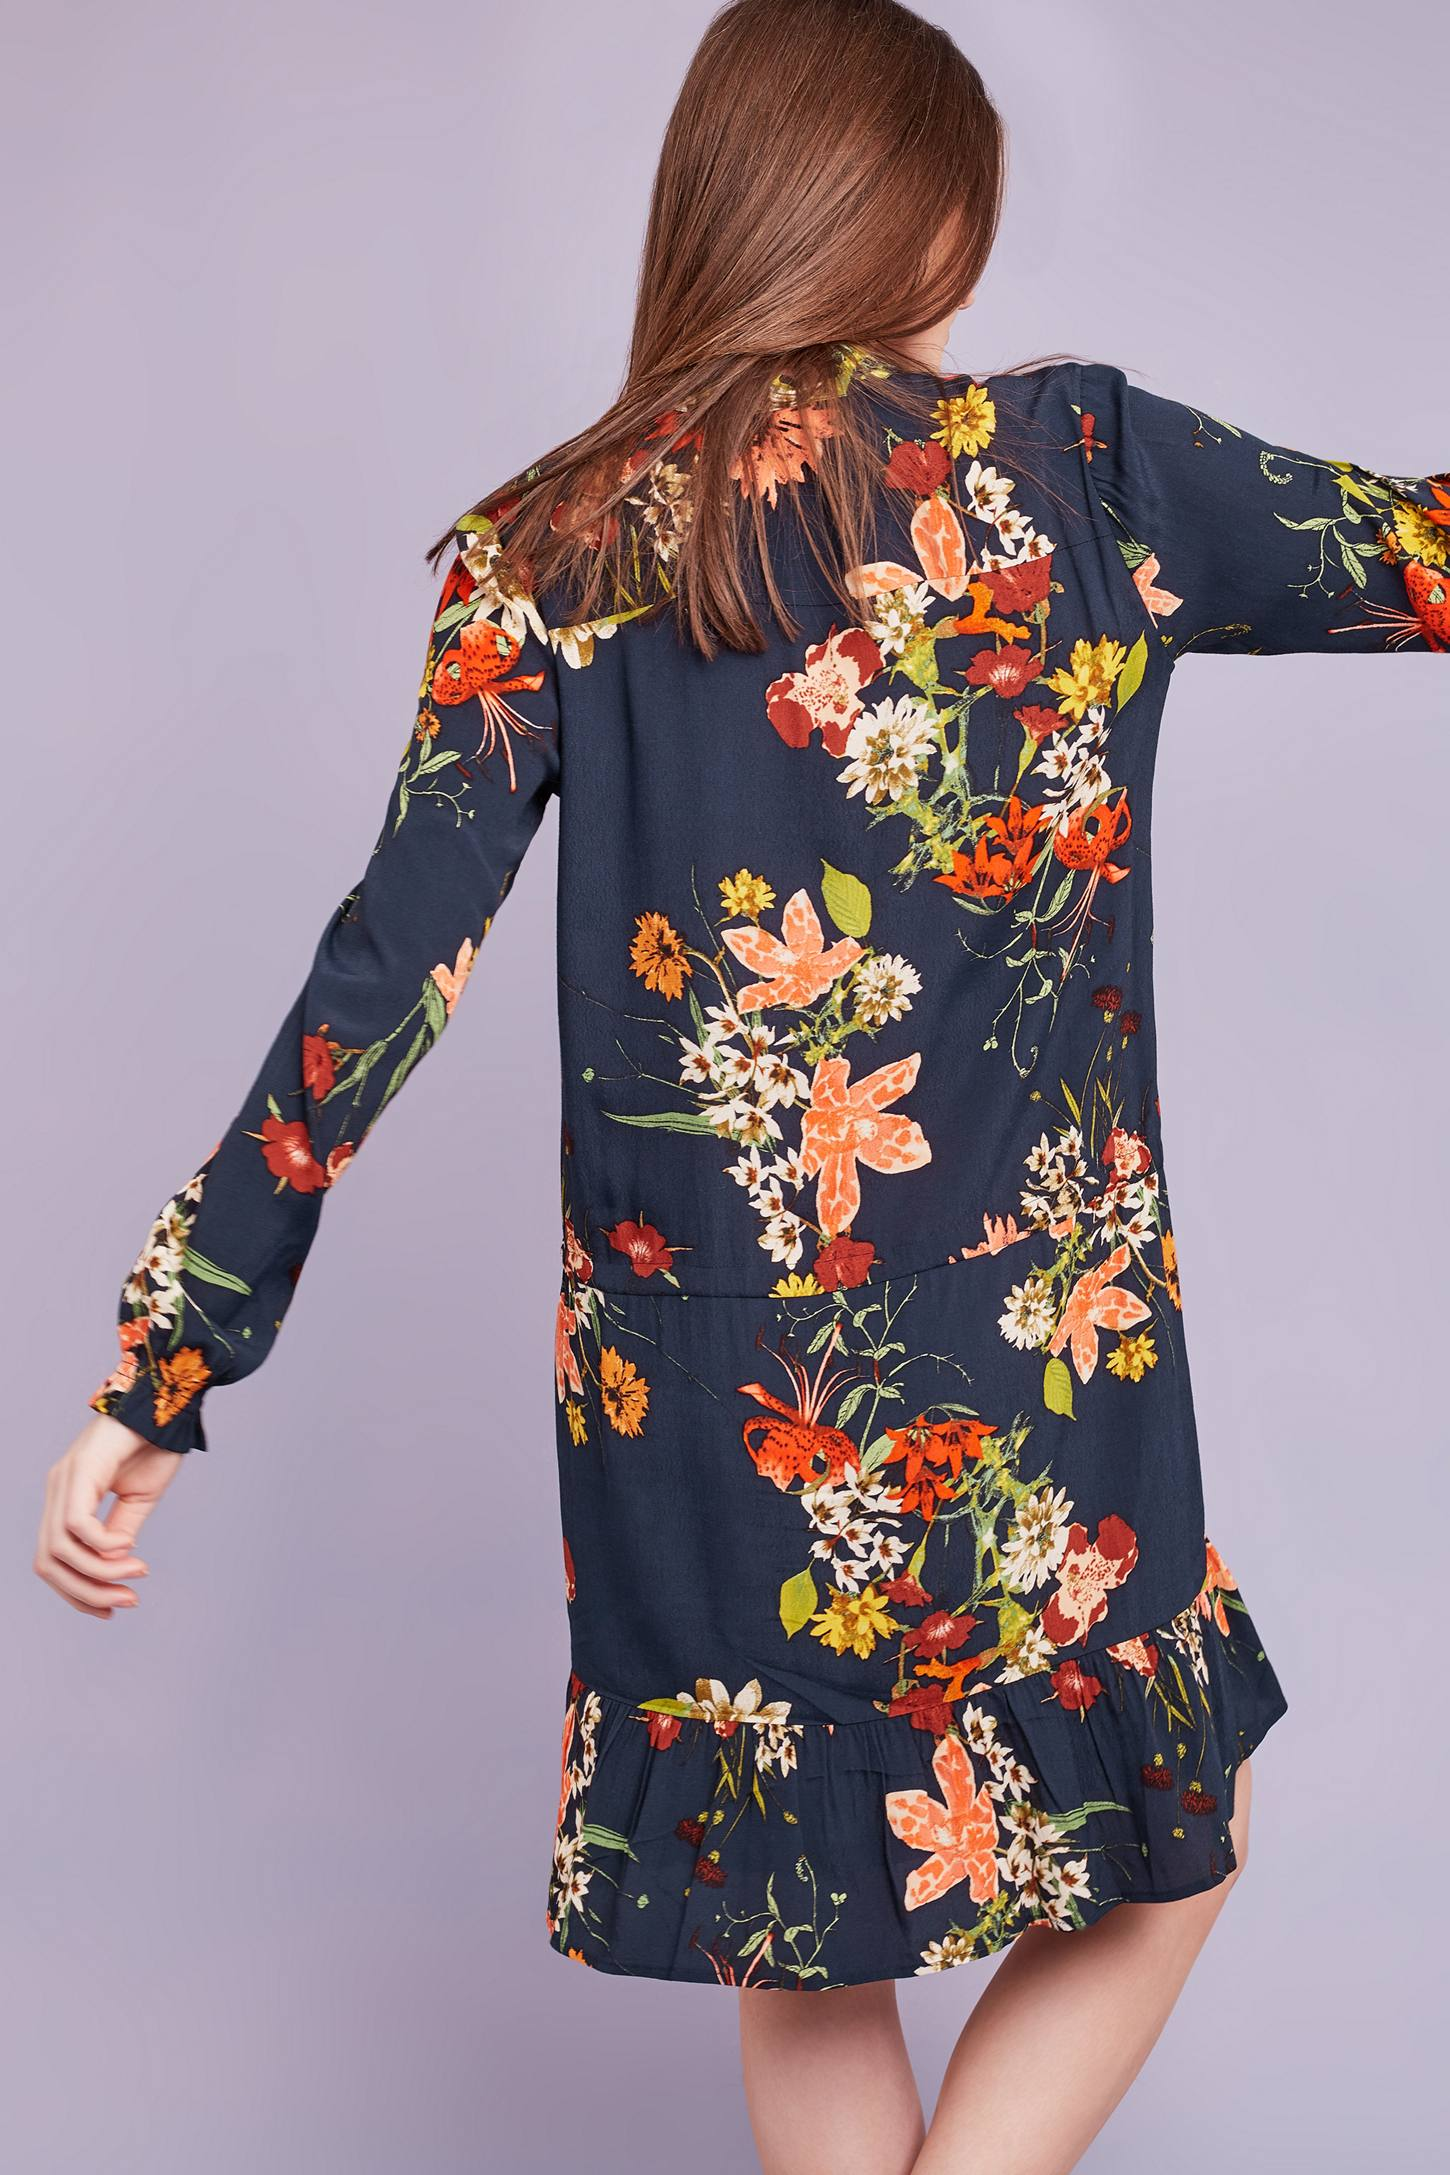 Slide View: 4: Cally Floral Dress, Navy